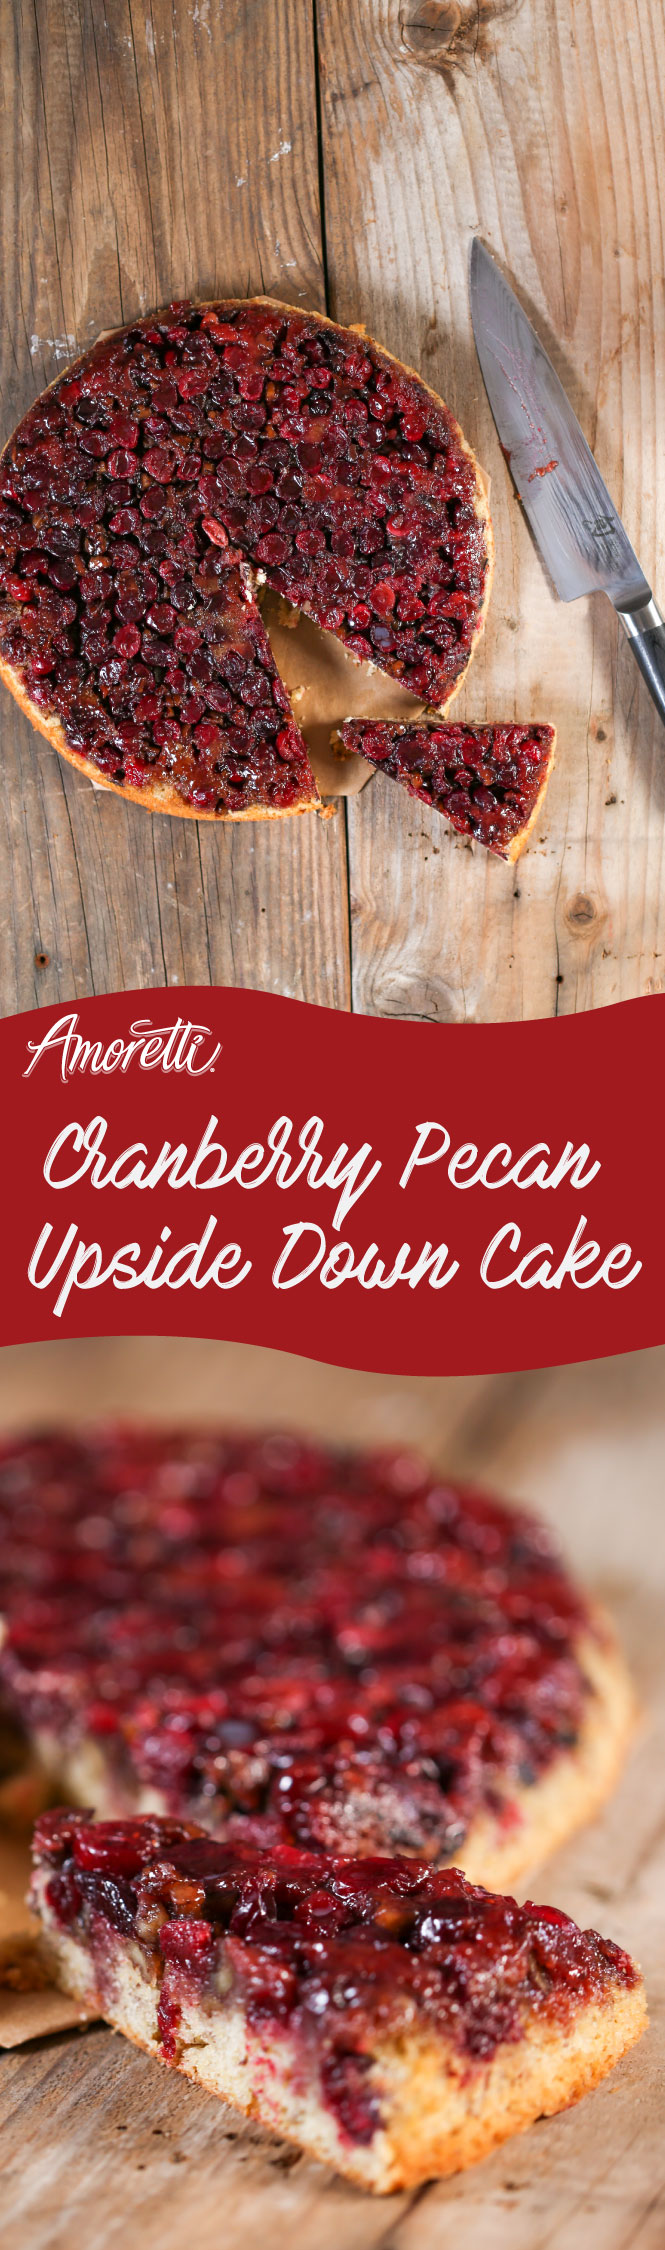 Host a tea party and make this marvelous Cranberry Pecan Upside Down Cake, your guests will be impressed!